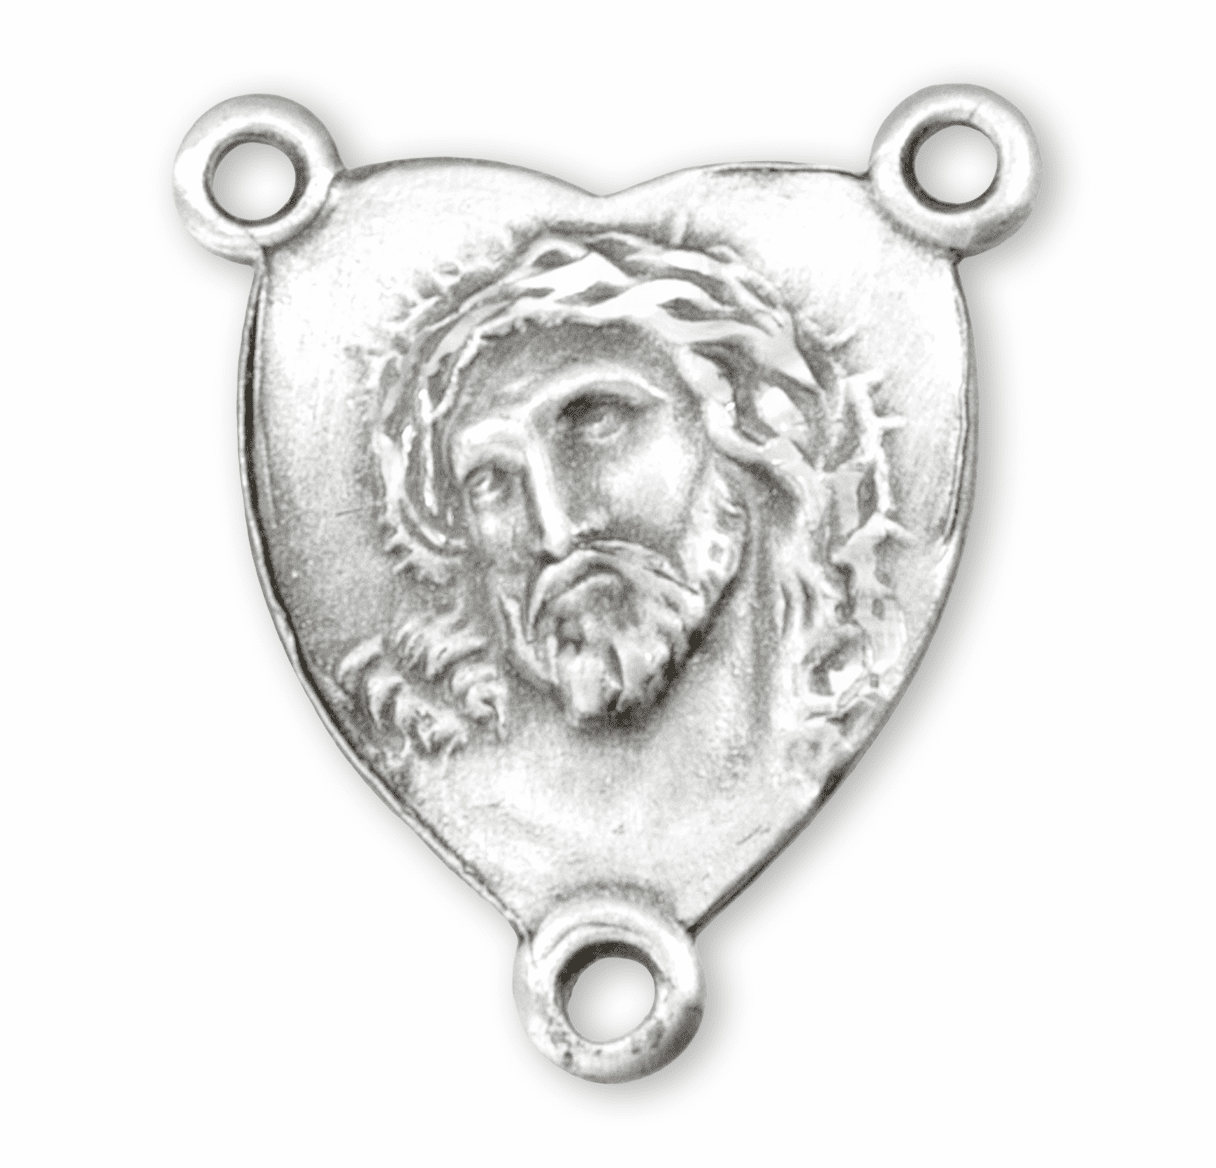 HMH Religious Heart Shaped Head of Christ Sterling Silver Rosary Center